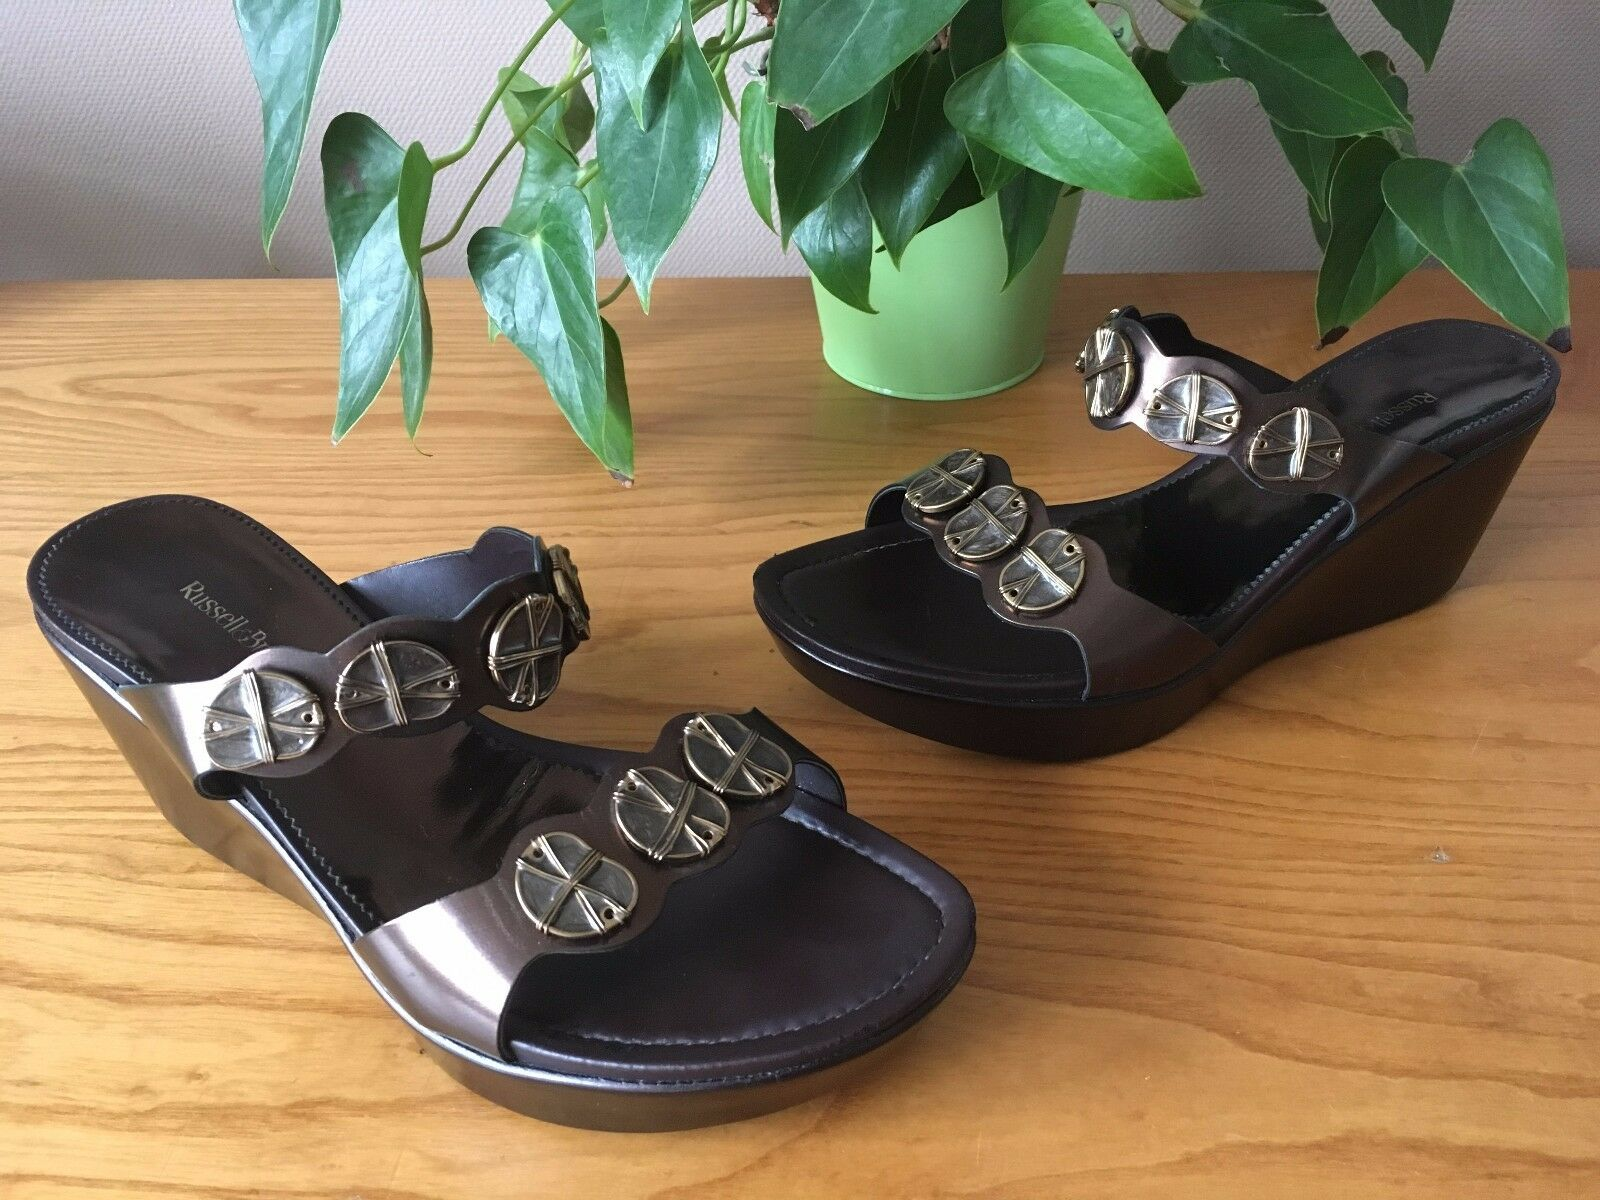 Russell & Bromley bronze leather embellished slip on wedge sandals UK 6 EU 39